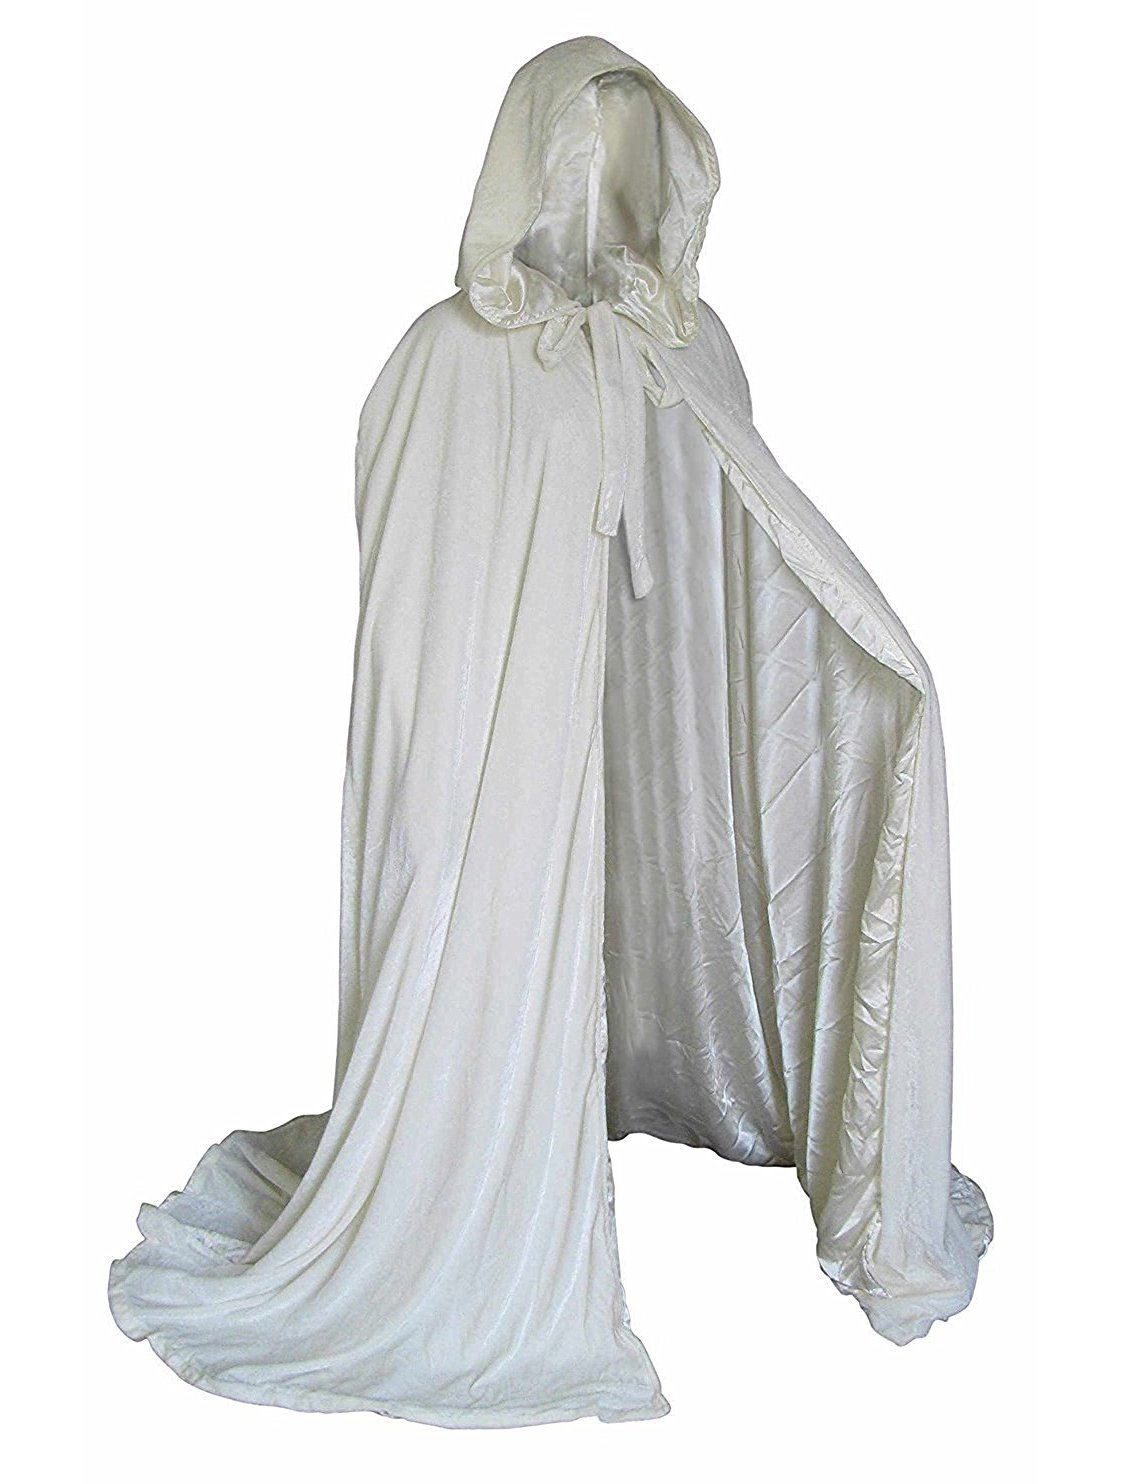 BuyBro White Wedding Cape Velvet Cloaks with Hood Costumes Cosplay Robes Capes Medium